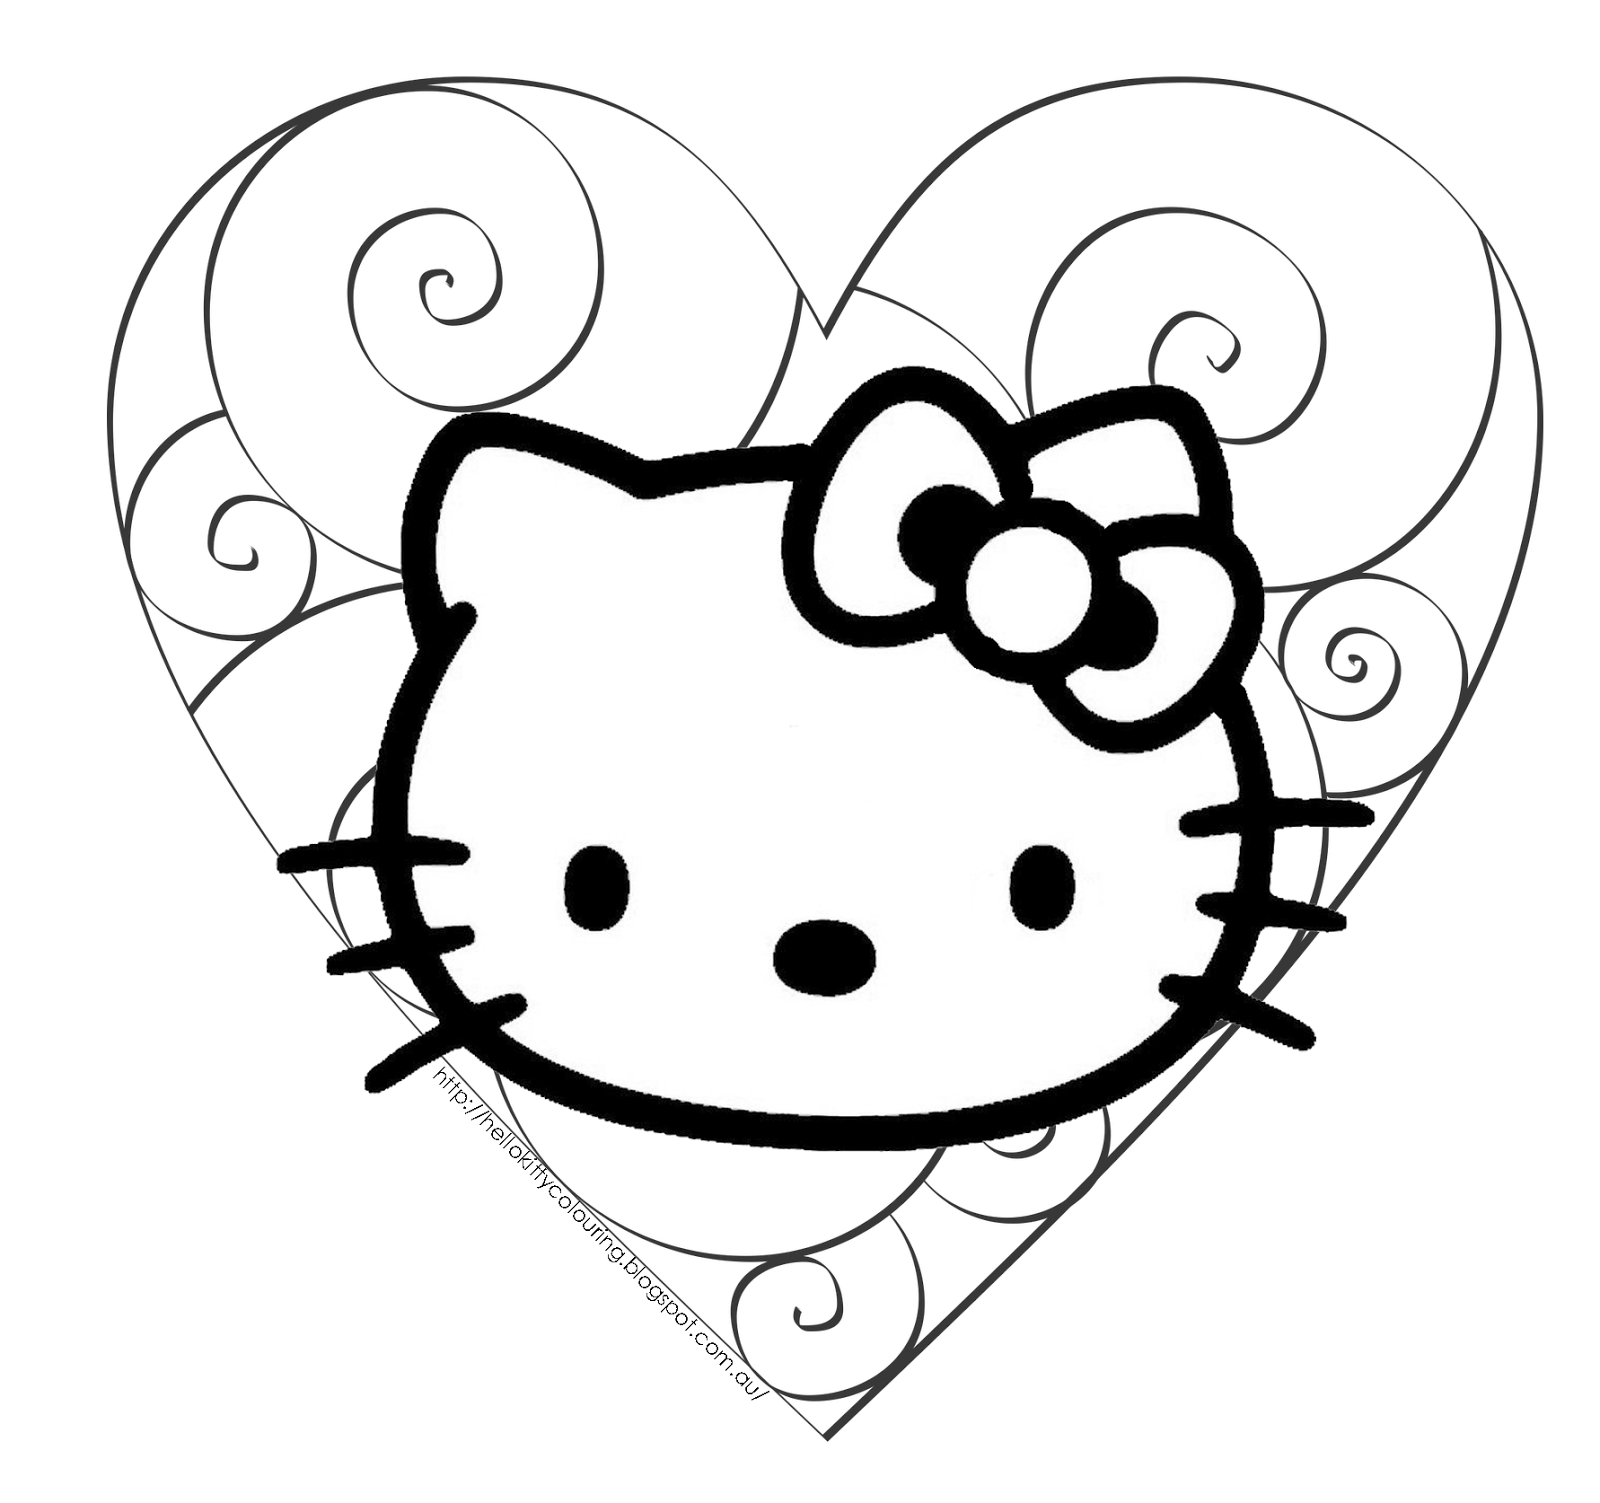 images of hello kitty coloring pages free printable hello kitty coloring pages for pages coloring kitty pages hello images of